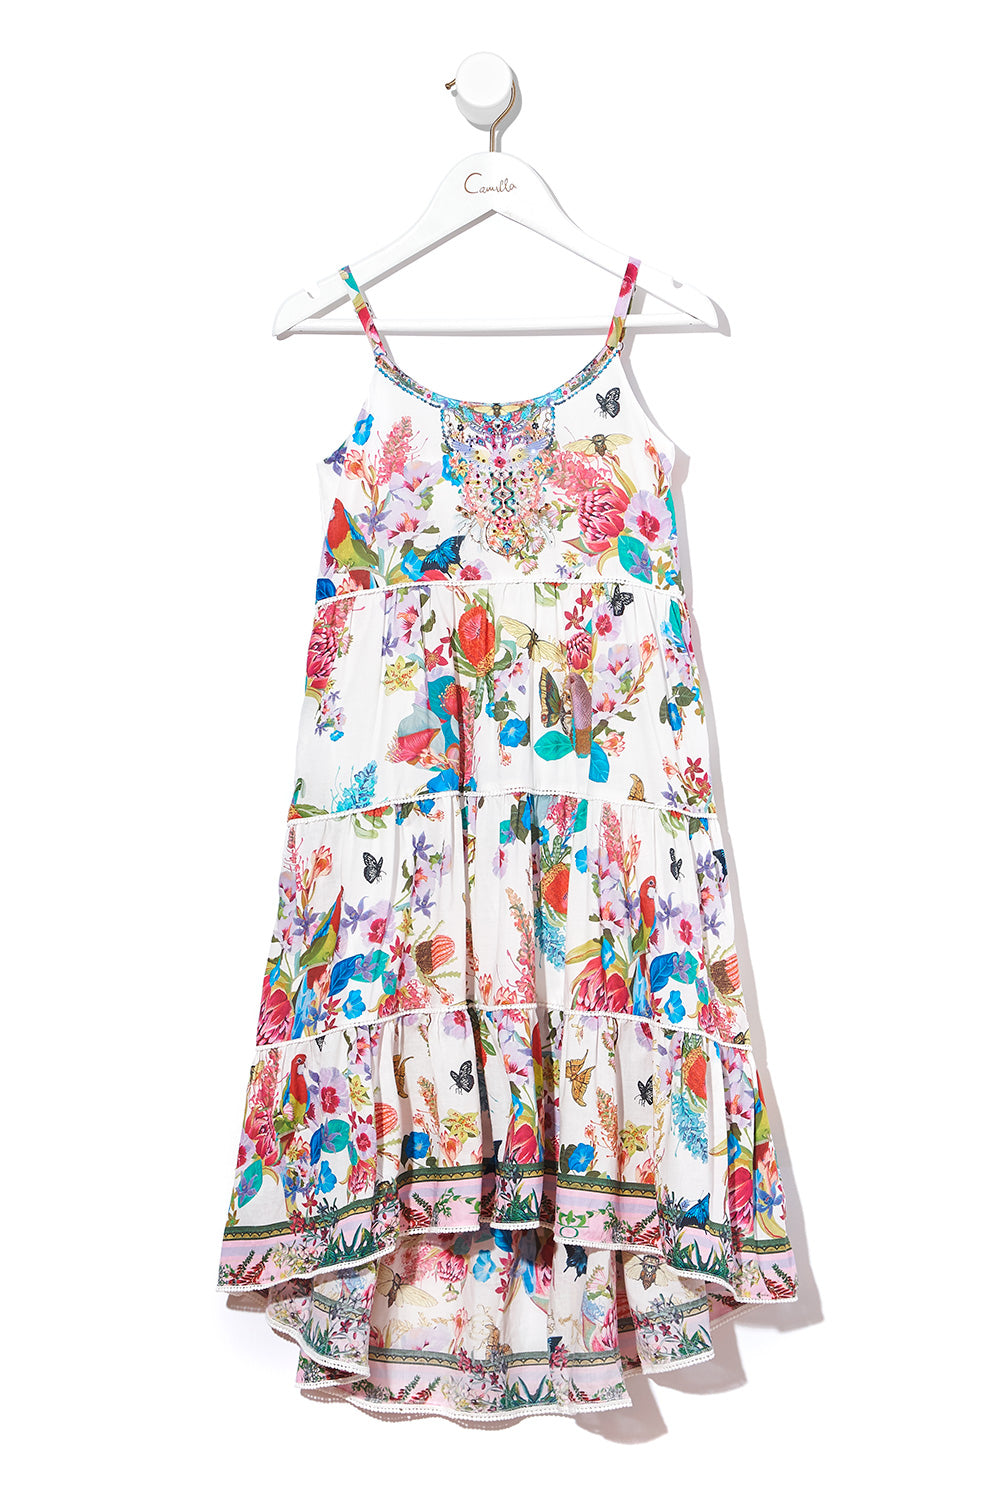 INFANTS HIGH LOW HEM DRESS HOMEWARD FOUND